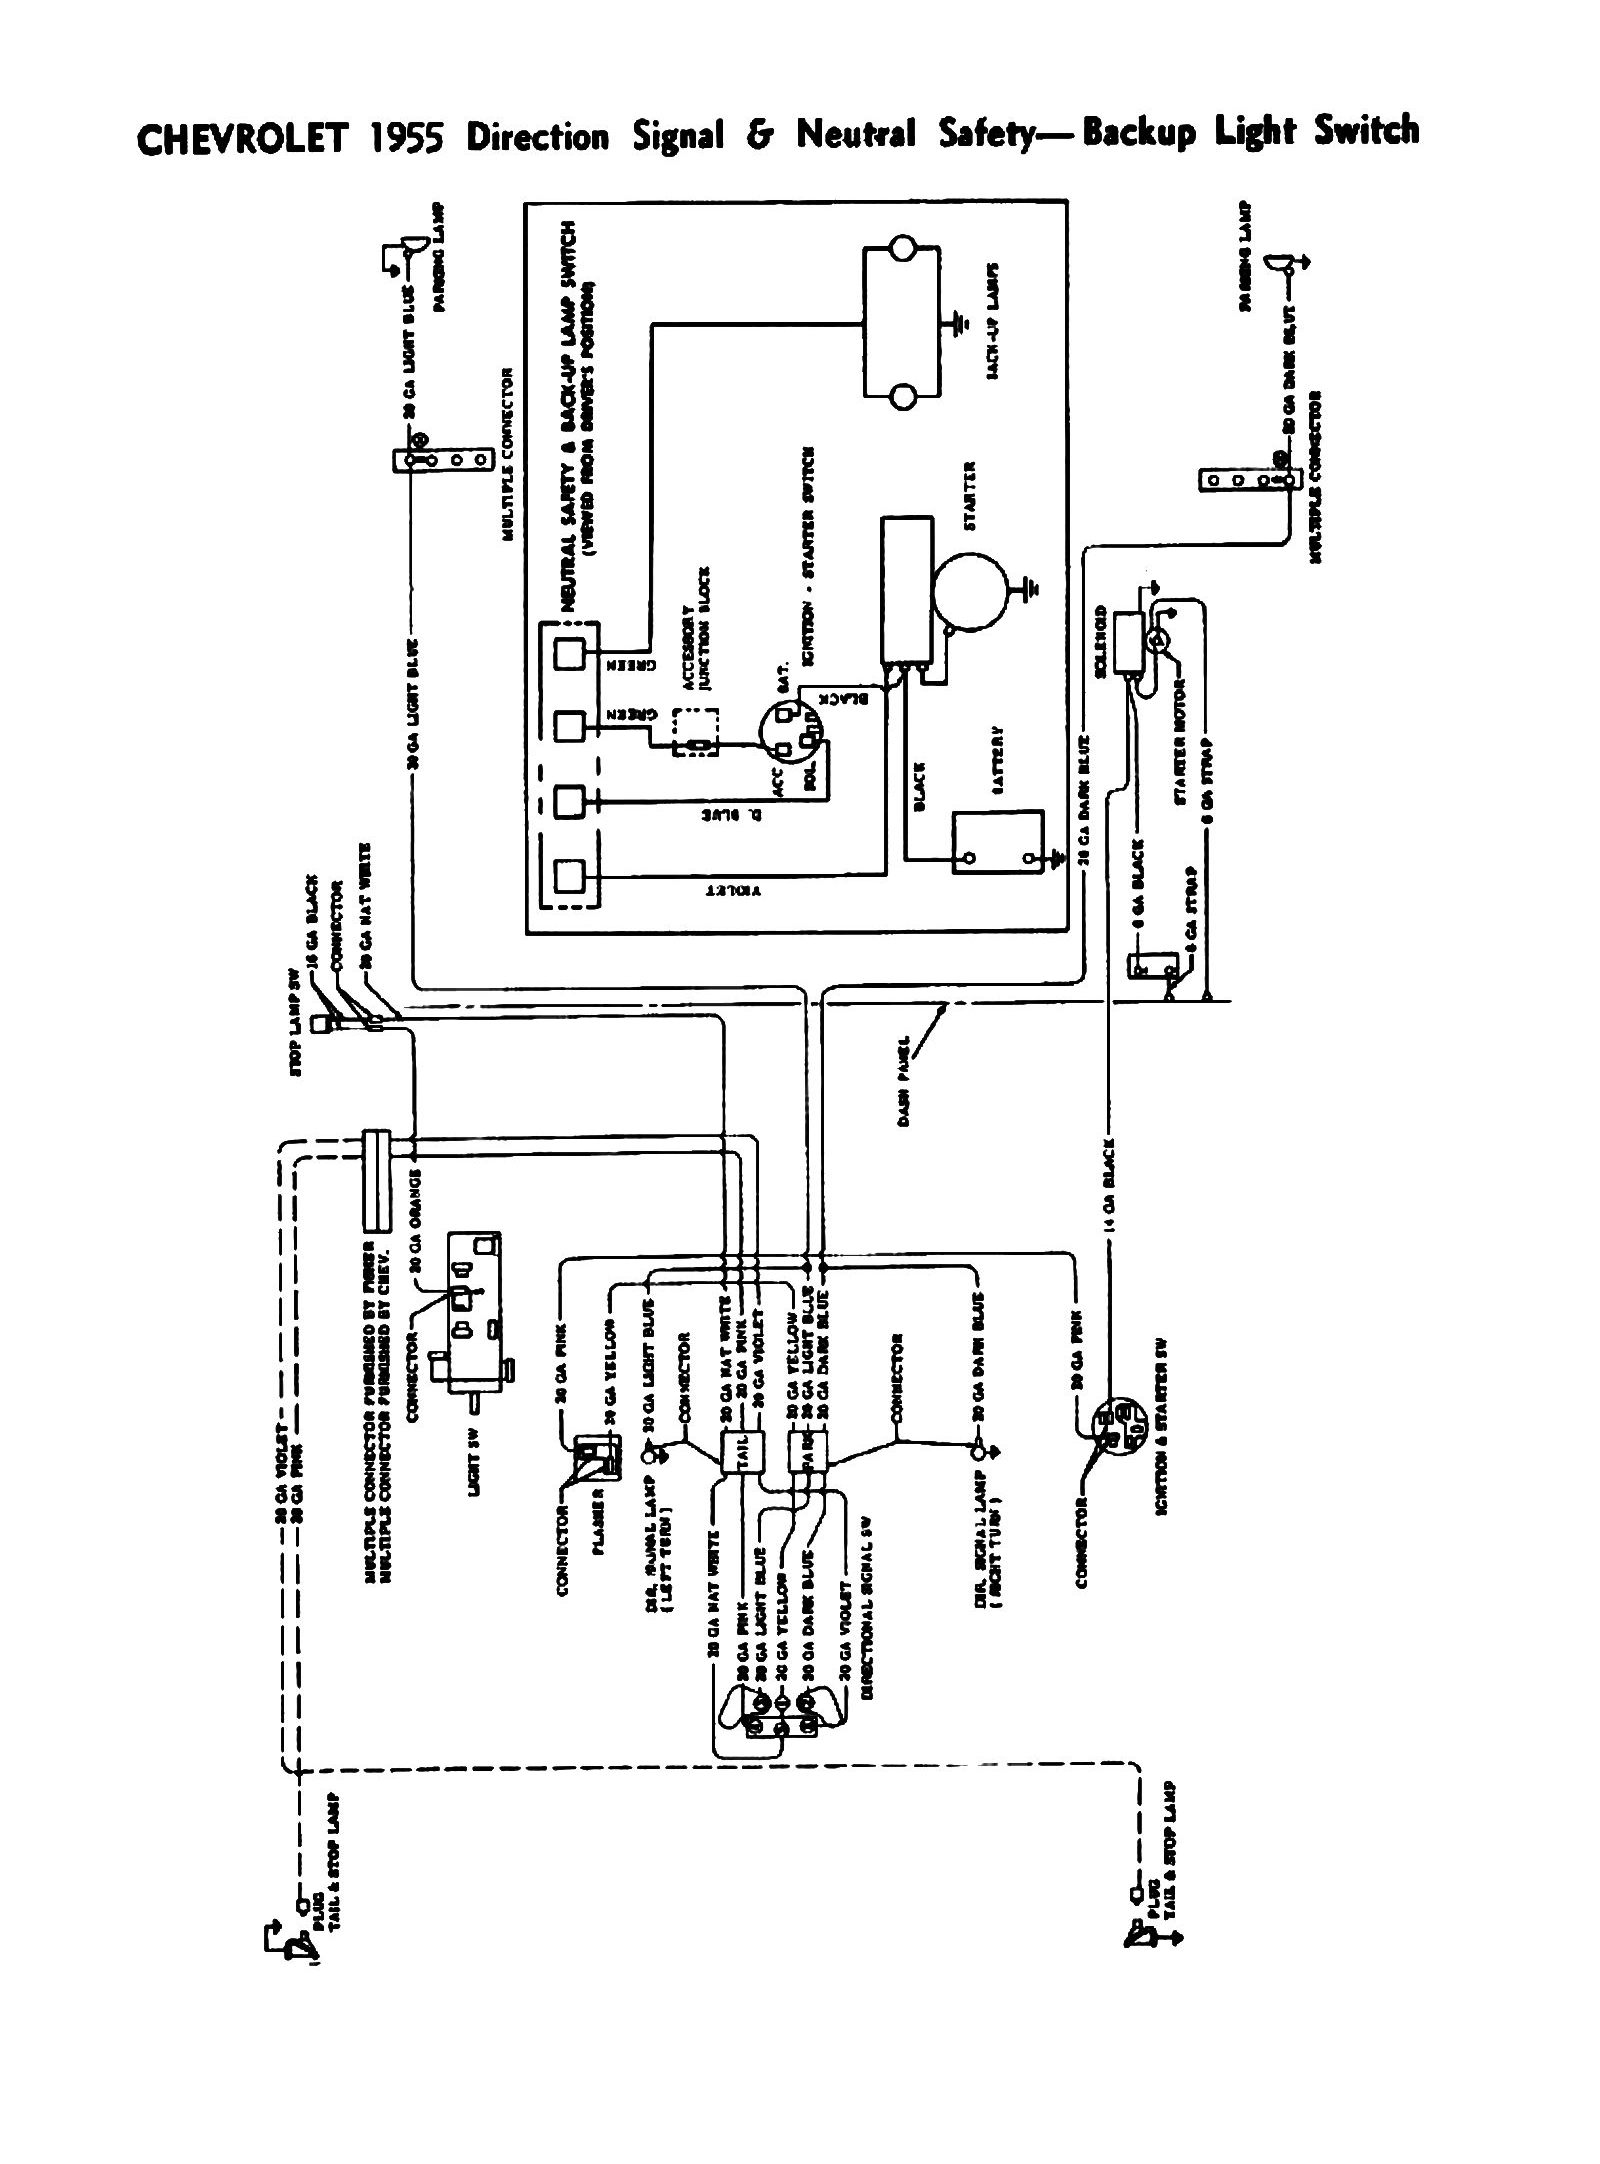 55signal chevrolet ignition wiring diagram chevrolet ignition wiring  at mifinder.co